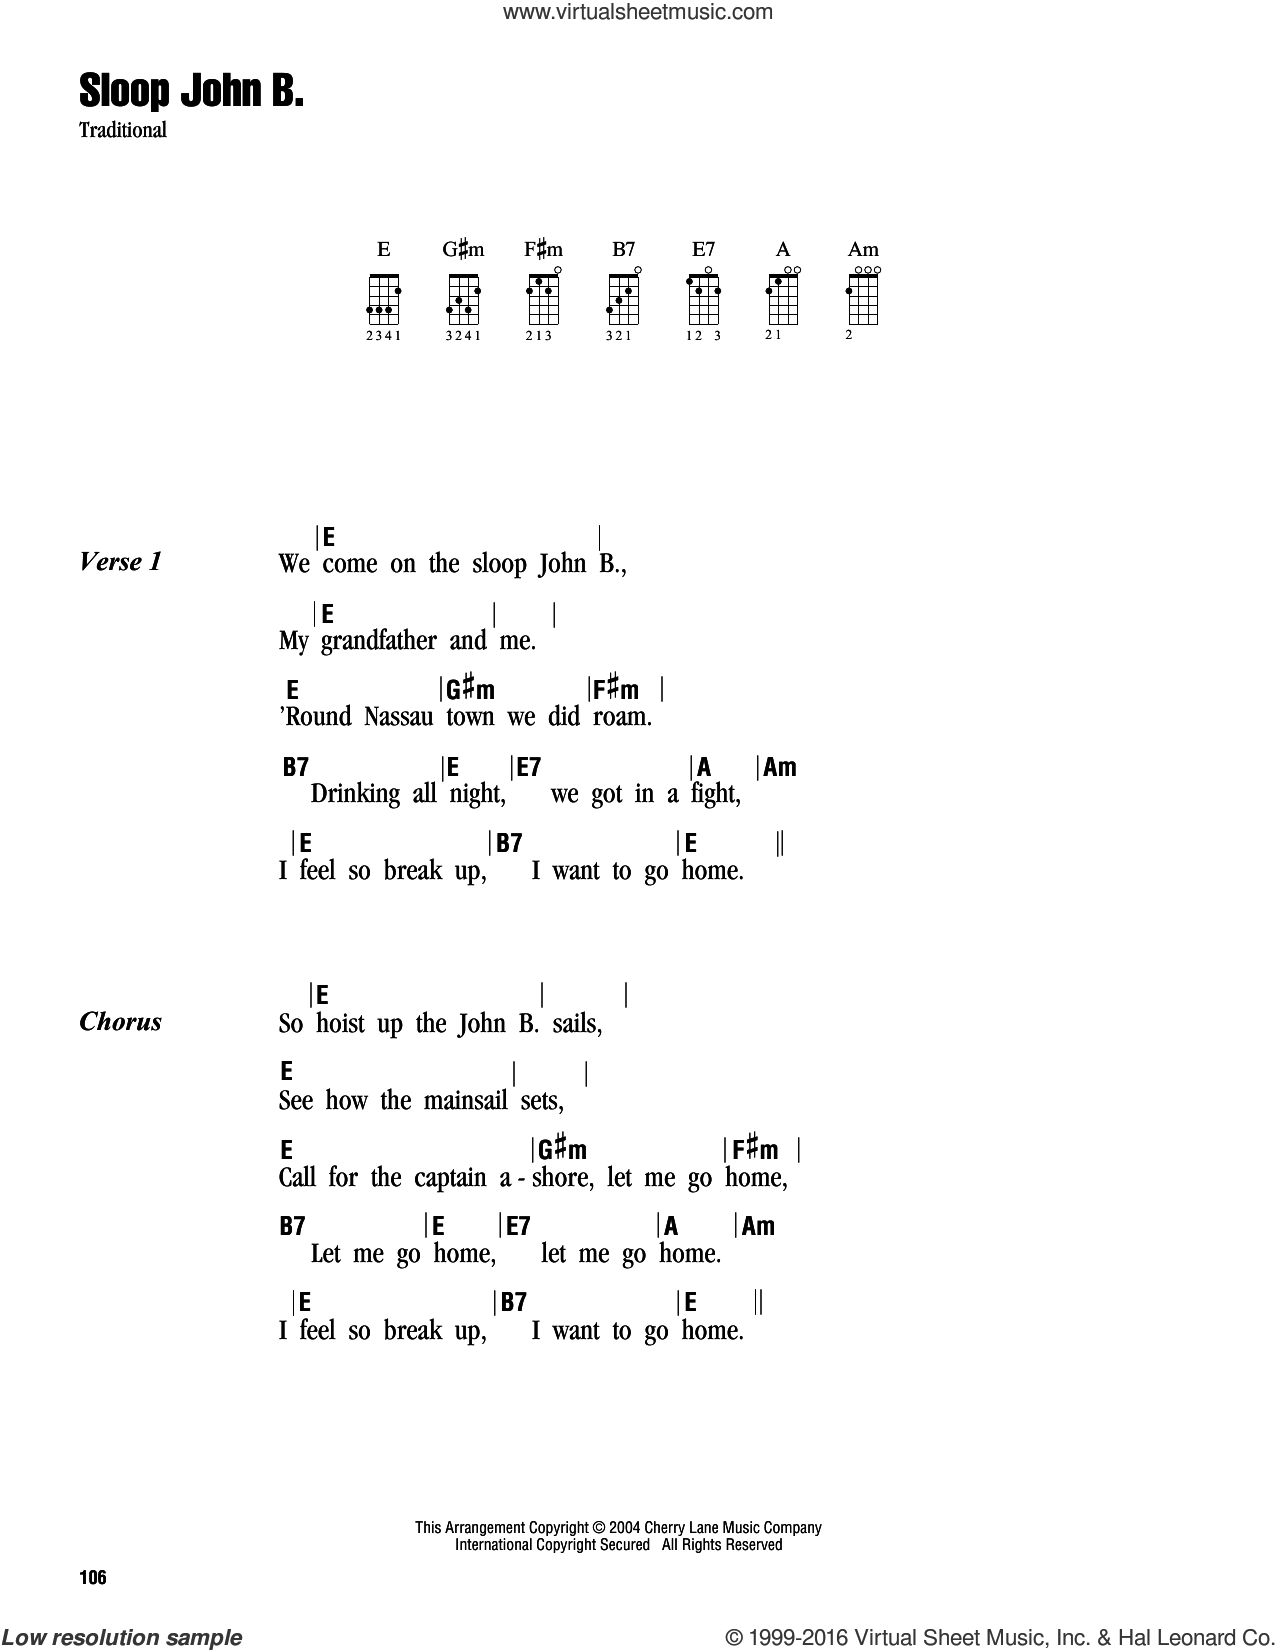 Sloop John B. sheet music for ukulele (chords), intermediate skill level